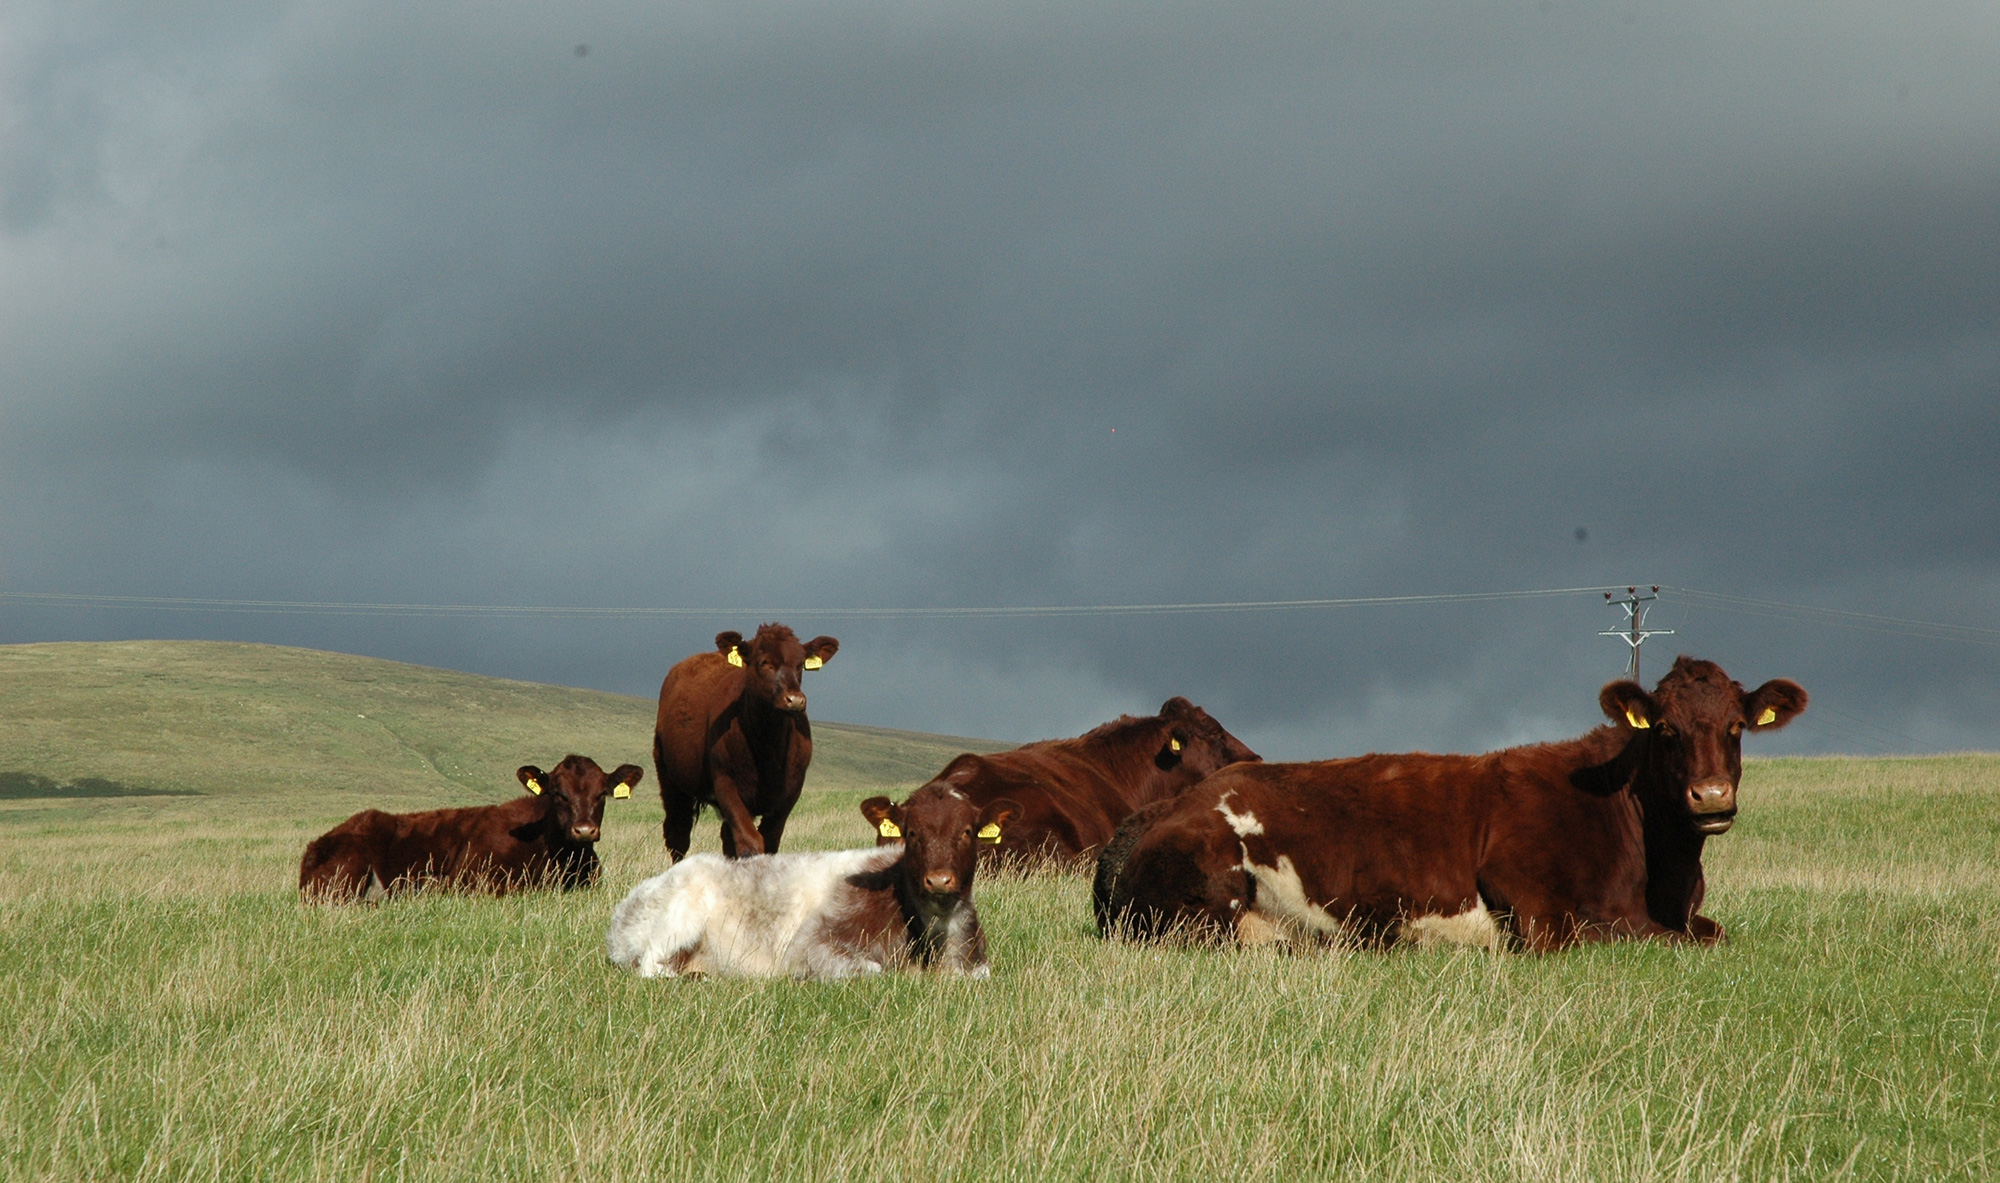 Knockenjig females with their six-month-old calves